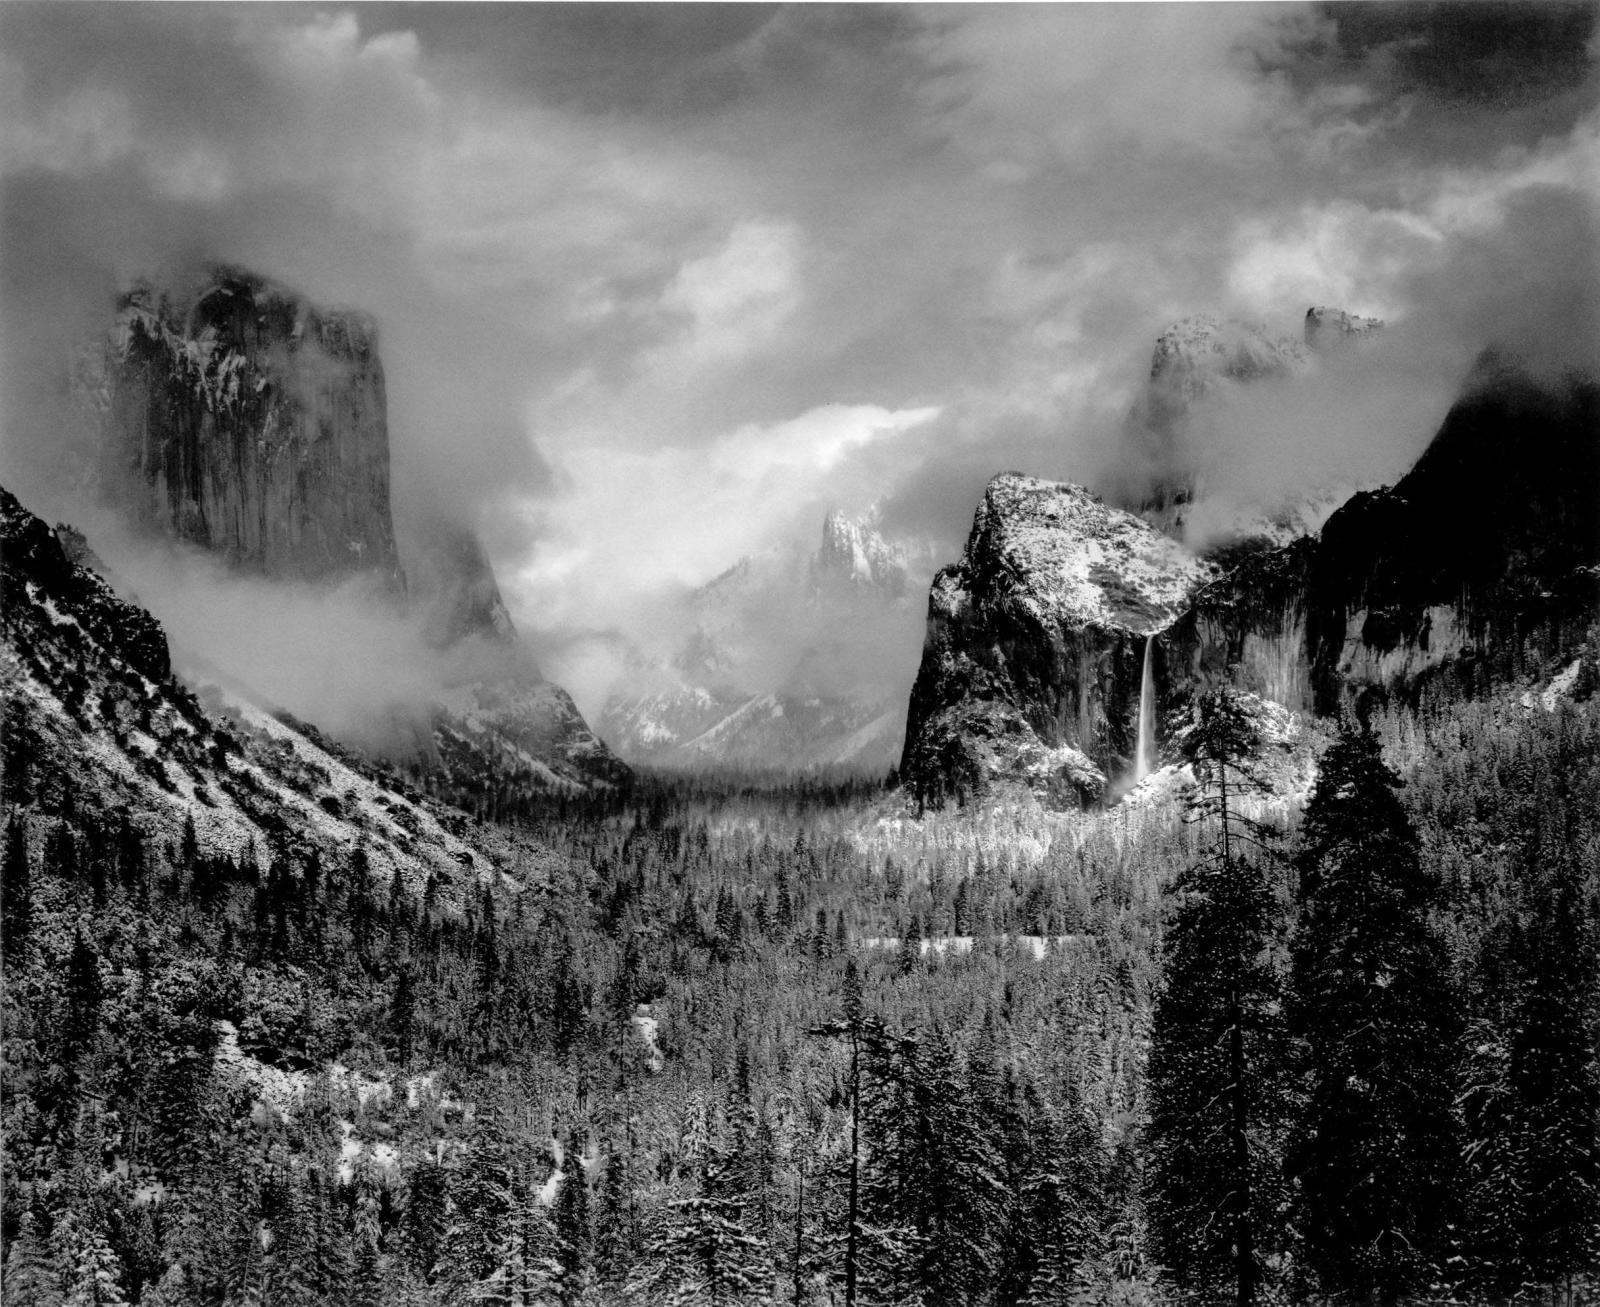 Ansel Adams, Clearing Winter Storm, Yosemite National Park, California, 1944. Estimate $40,000 - 60,000. Photographs New York